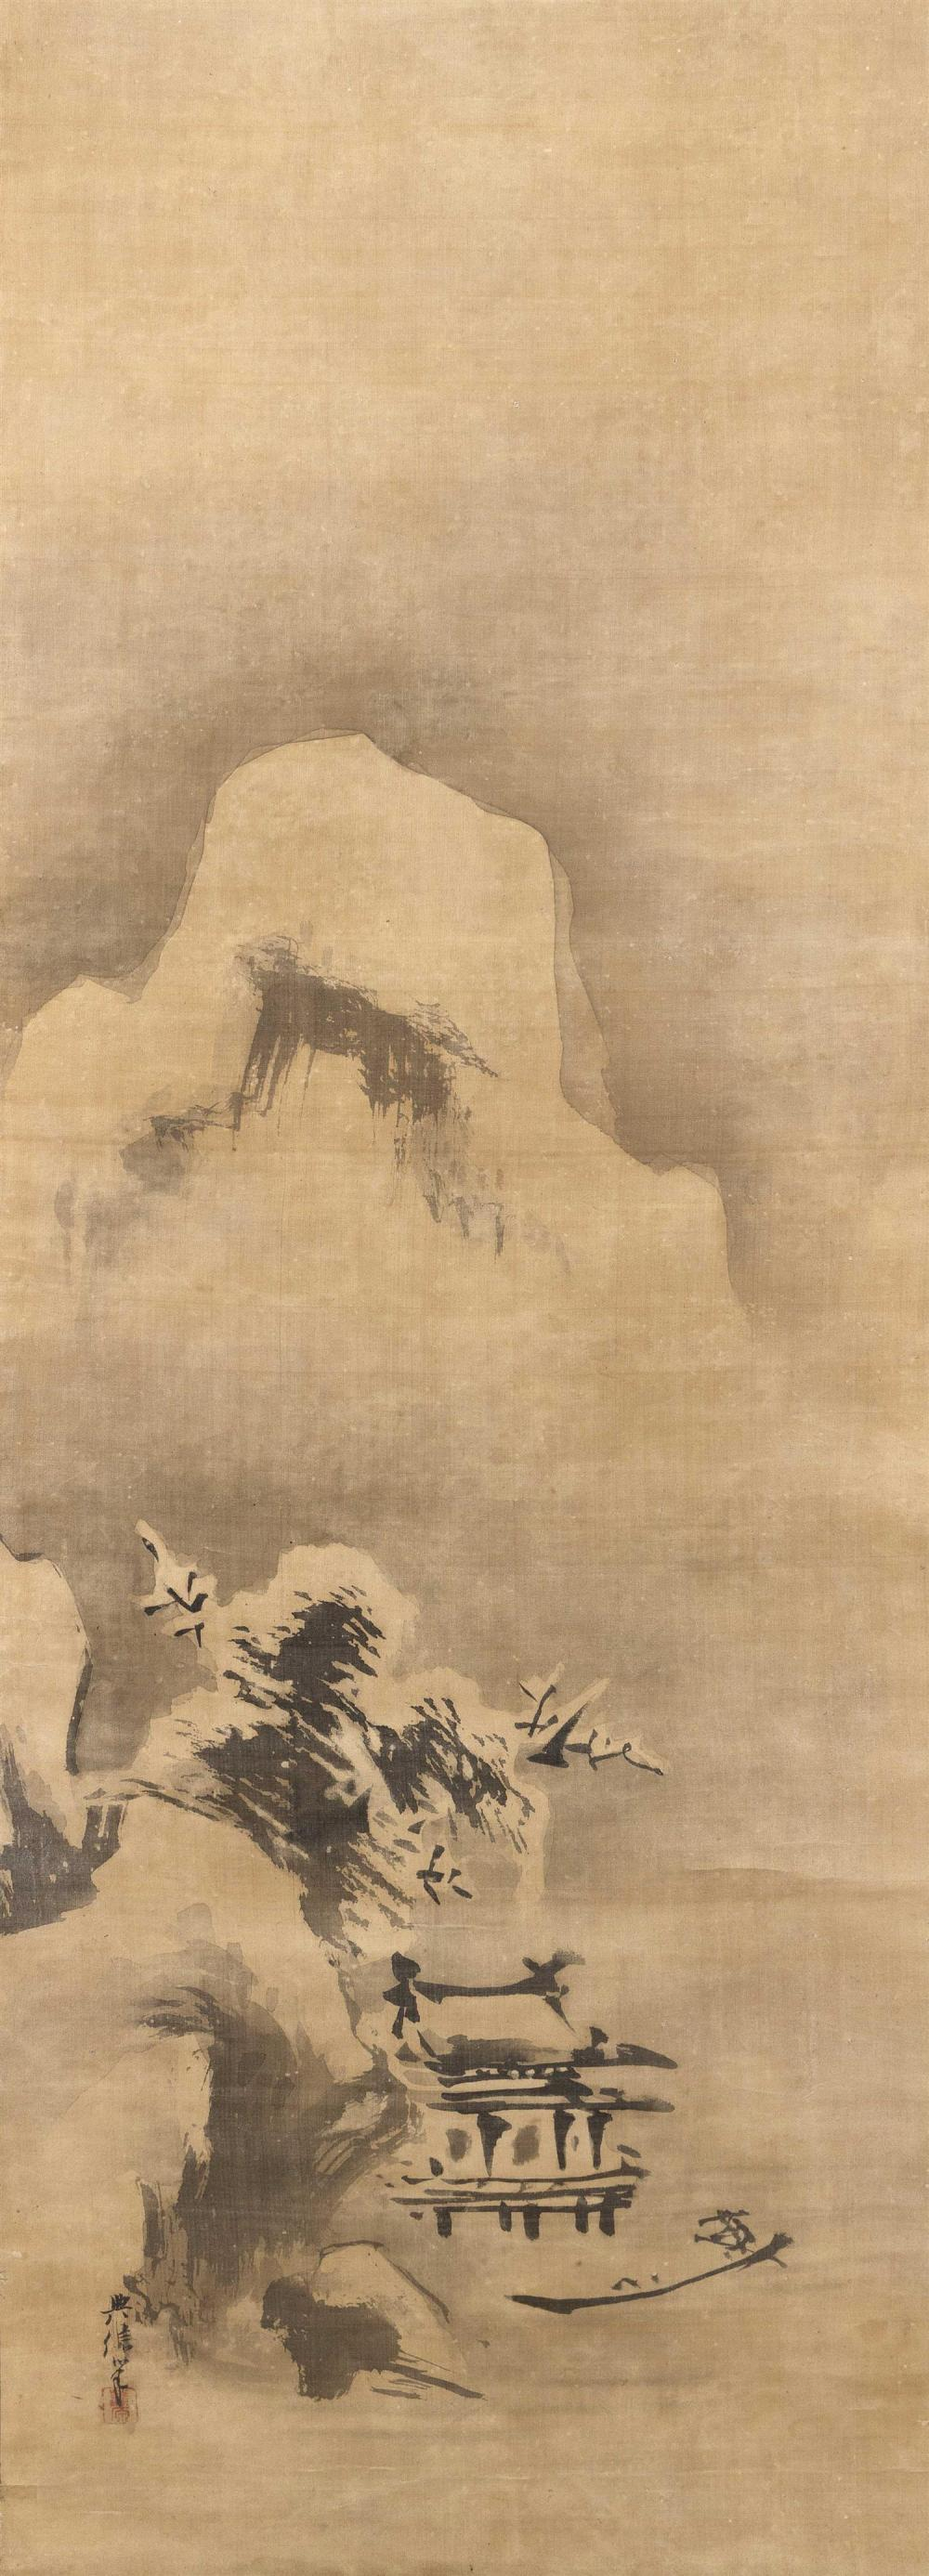 JAPANESE SCROLL PAINTING ON SILK BY KANO EISEN-IN II Depicts a snowy winter scene with a boatman and a pavilion beneath towering cli...